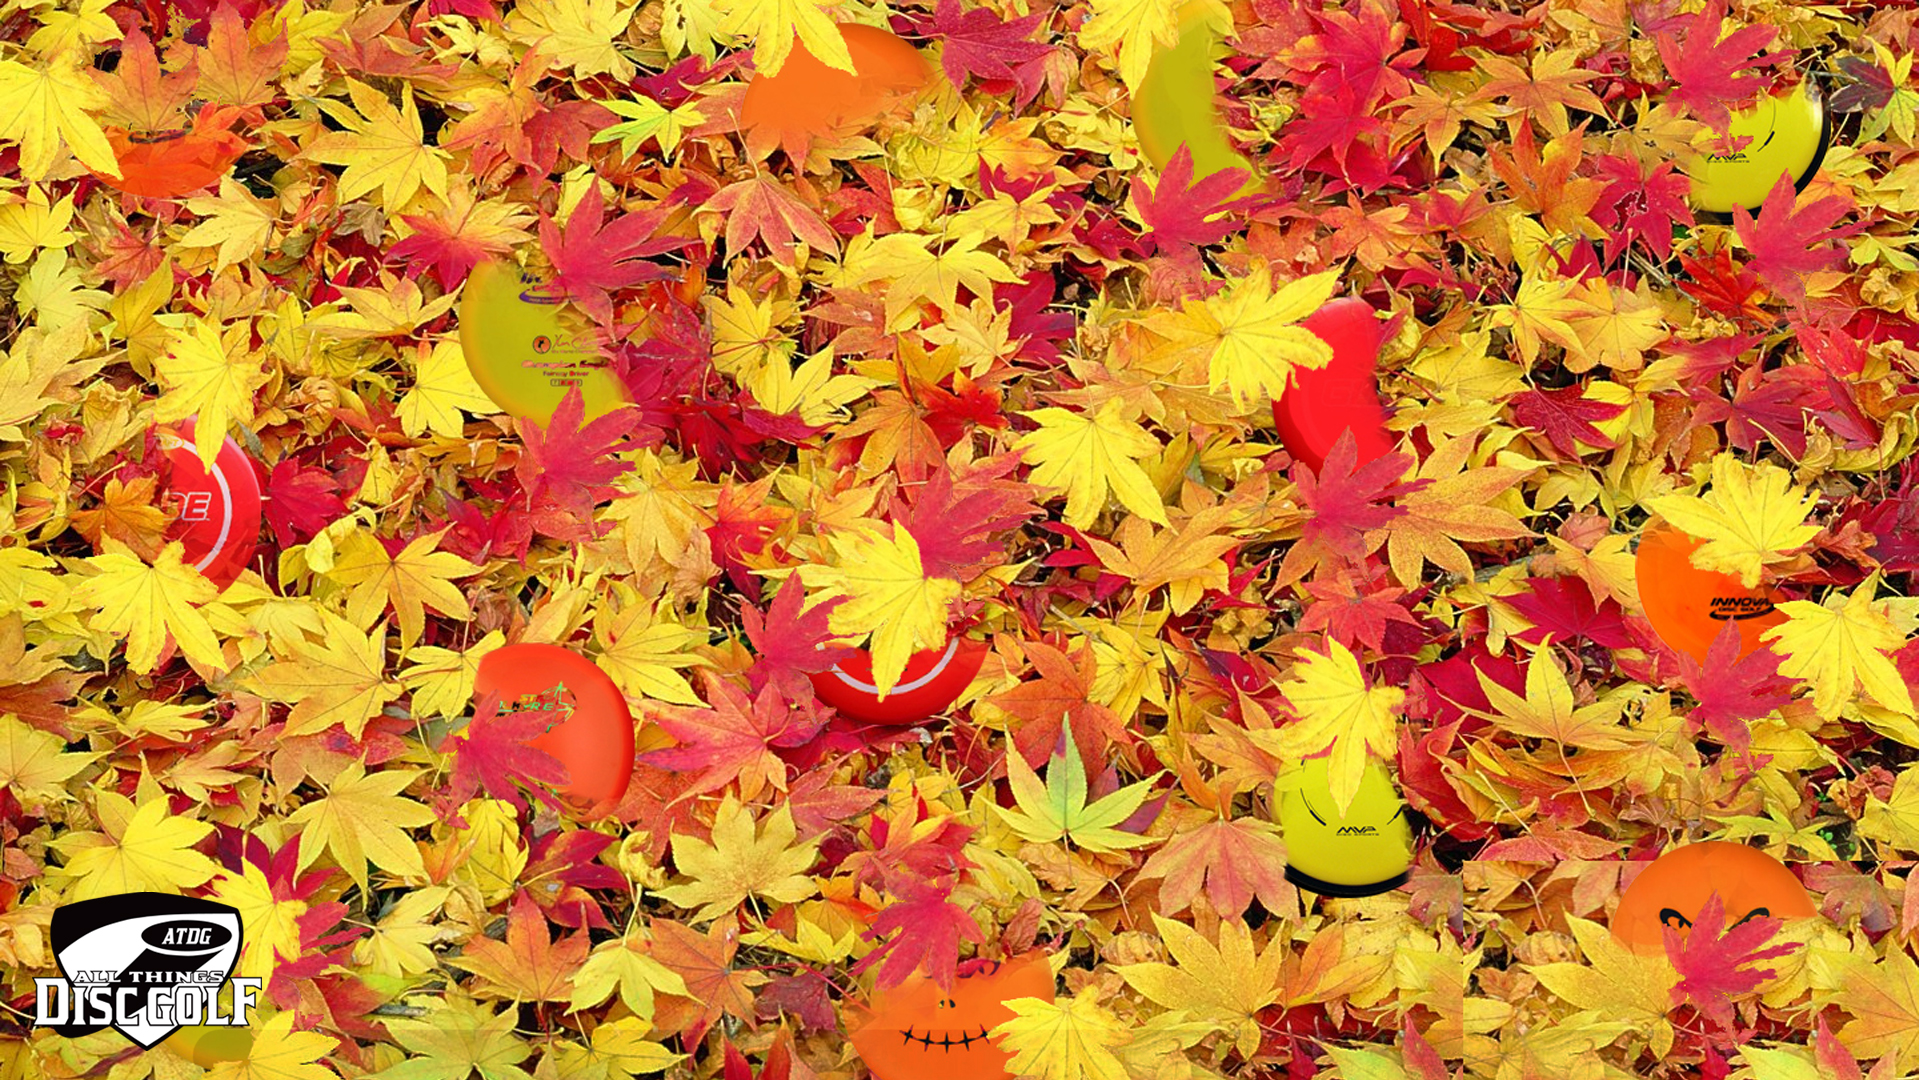 Late Fall Iphone Wallpaper Disc Golf Backgrounds November 2014 All Things Disc Golf